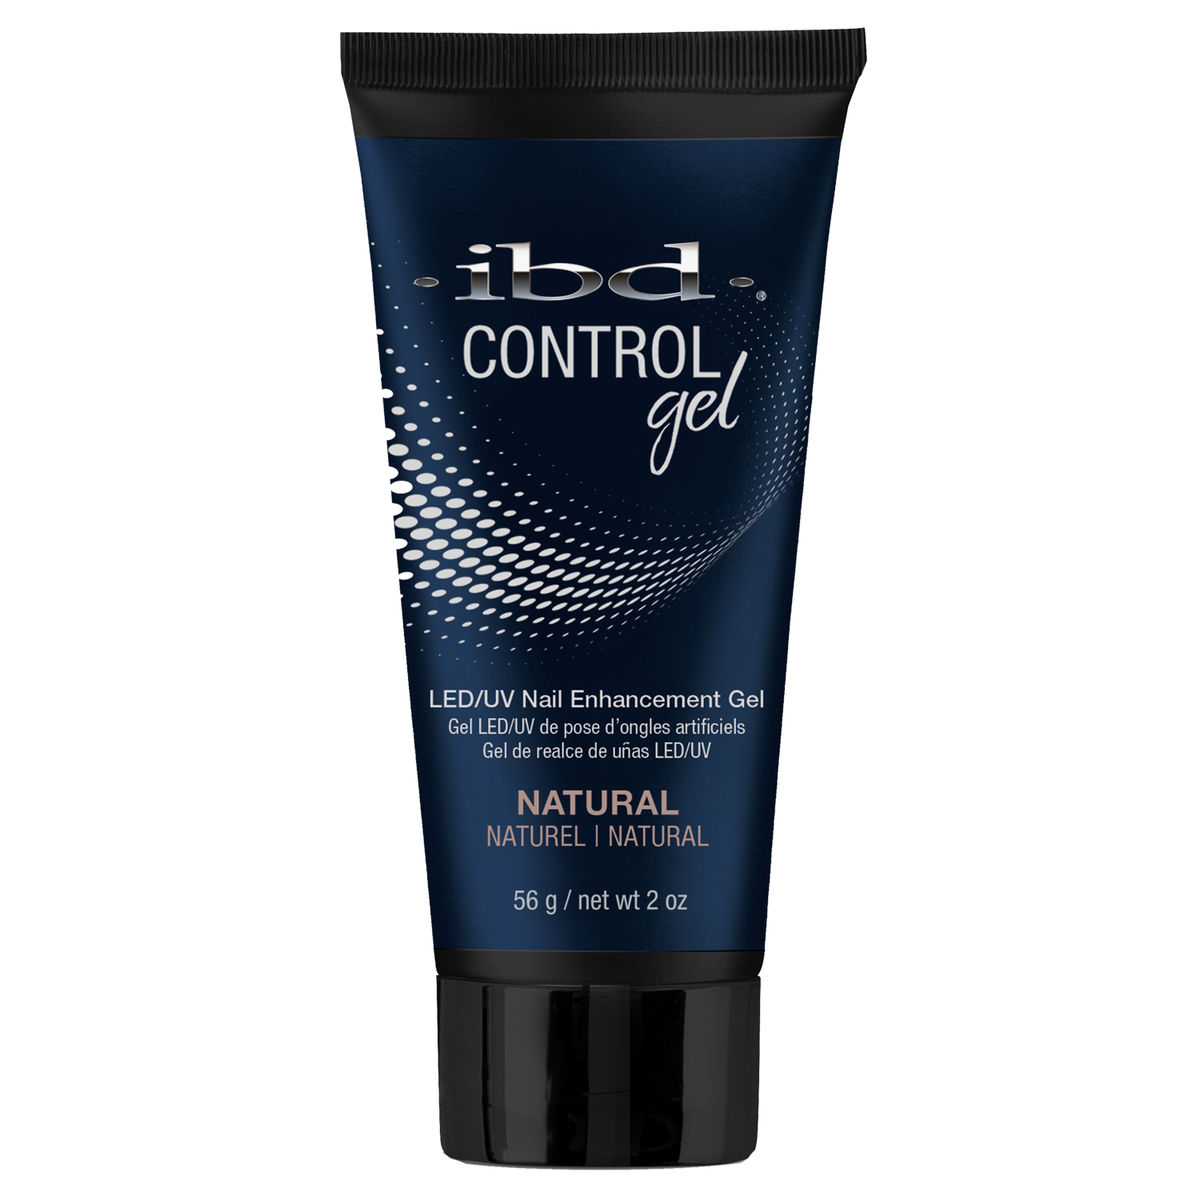 Gel za nadogradnju noktiju UV/LED gradivni kamuflažni IBD Control Gel Natural 56g